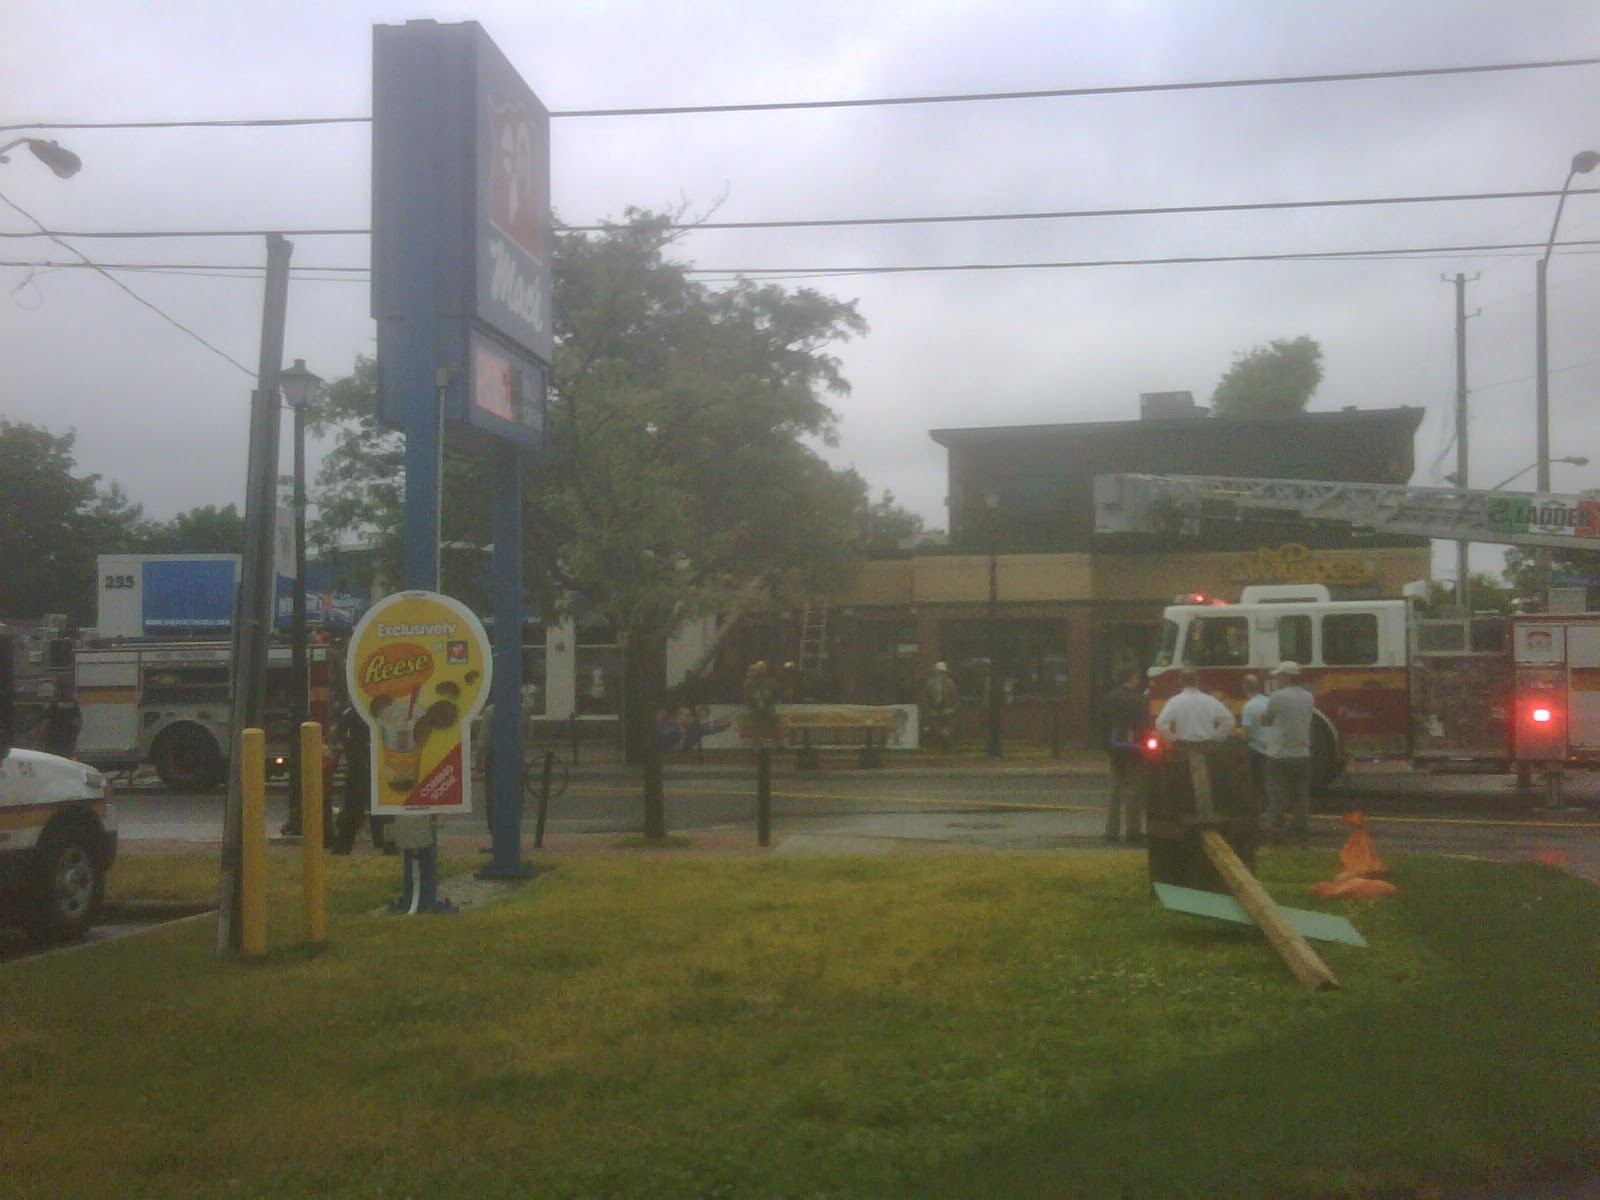 June 24, 2011 - my cell phone snapped this photo through the misty morning air, soon after the fire trucks had arrived on scene.